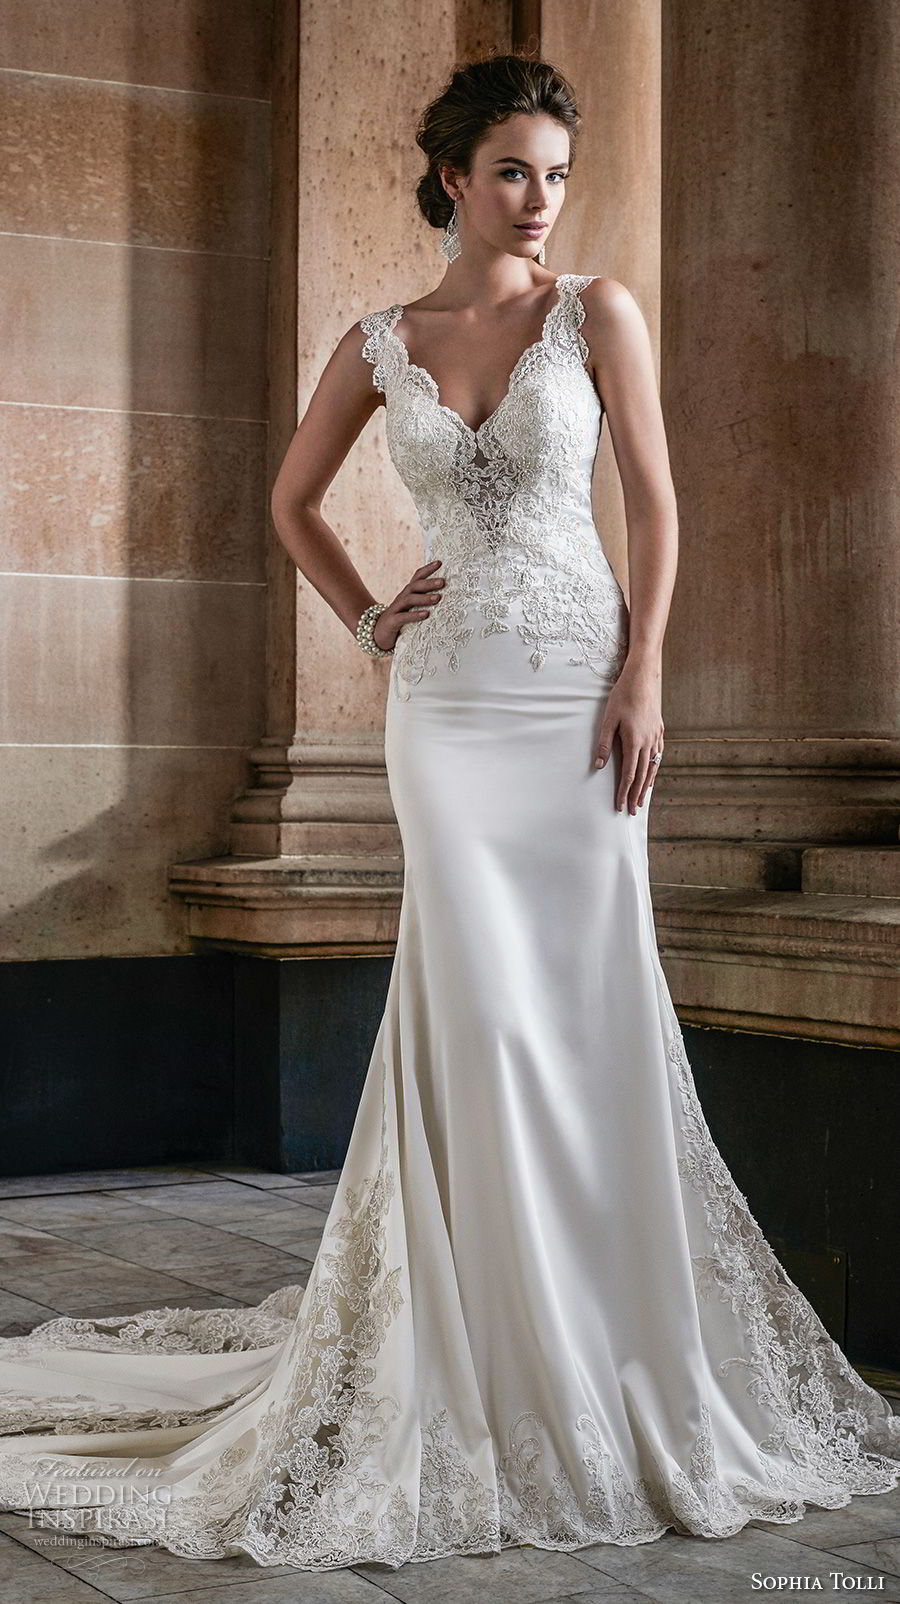 sophia tolli fall 2017 bridal sleeveless thick strap v neck ehavily embellished bodice elegant sheath wedding dress chapel train (29) mv